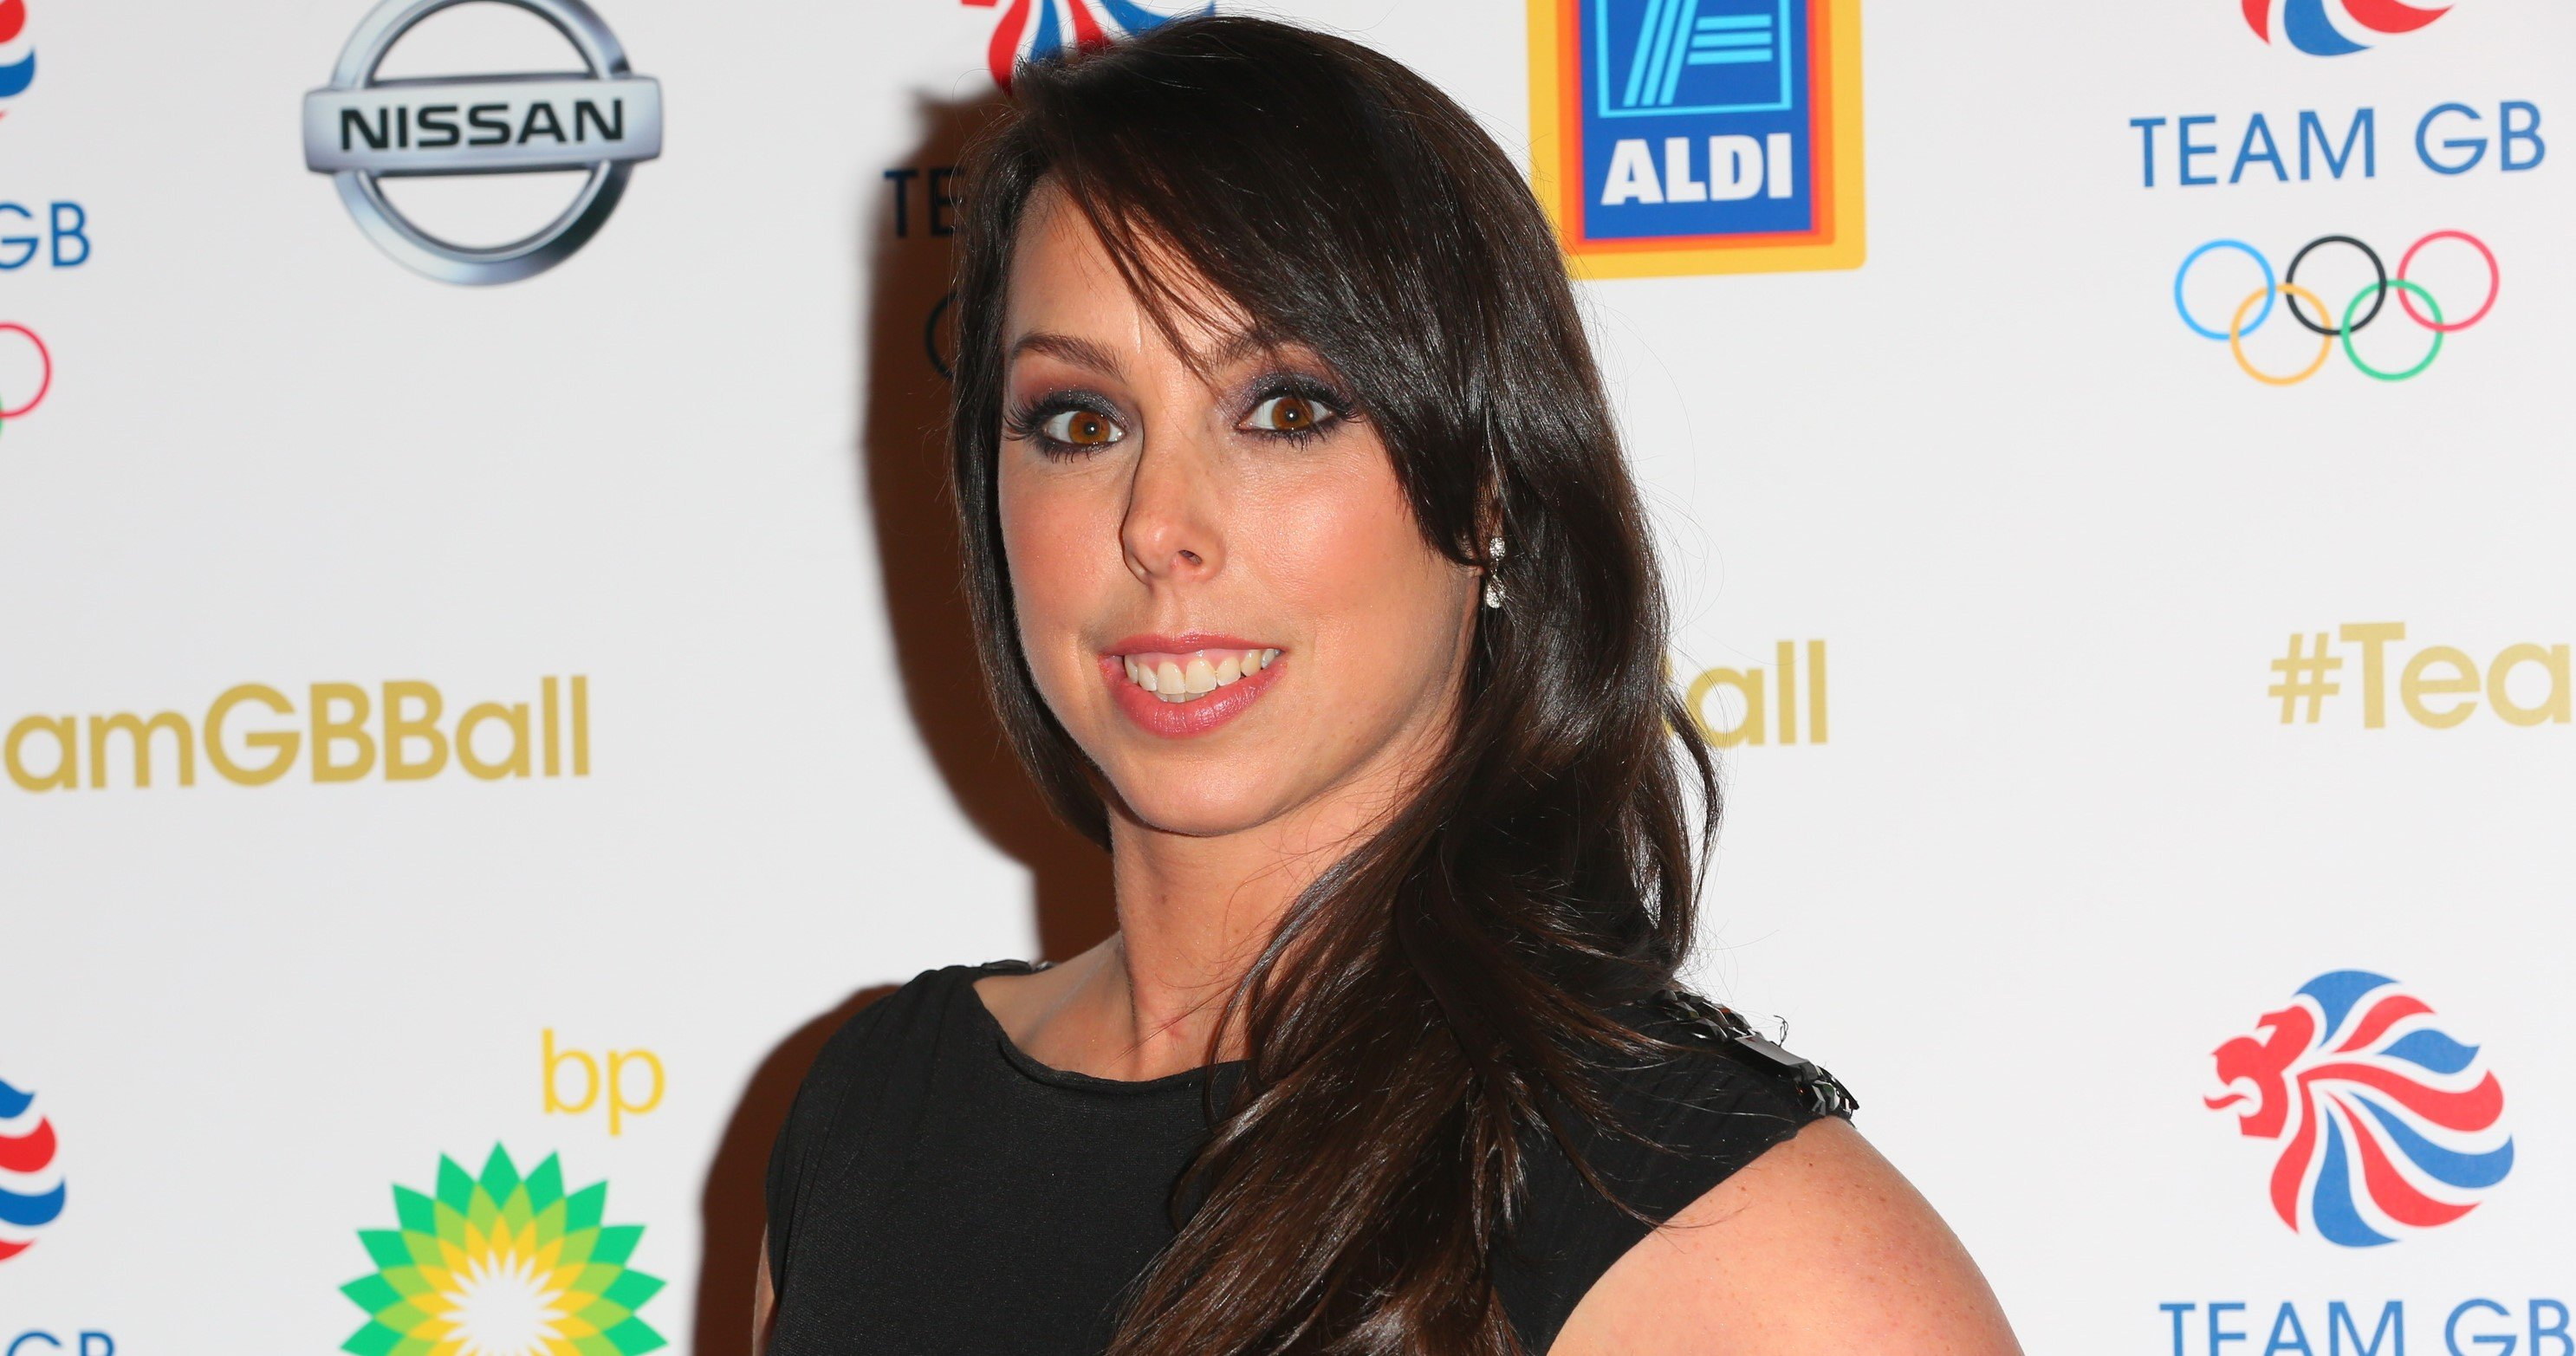 Dancing On Ice star Beth Tweddle announces birth of first child